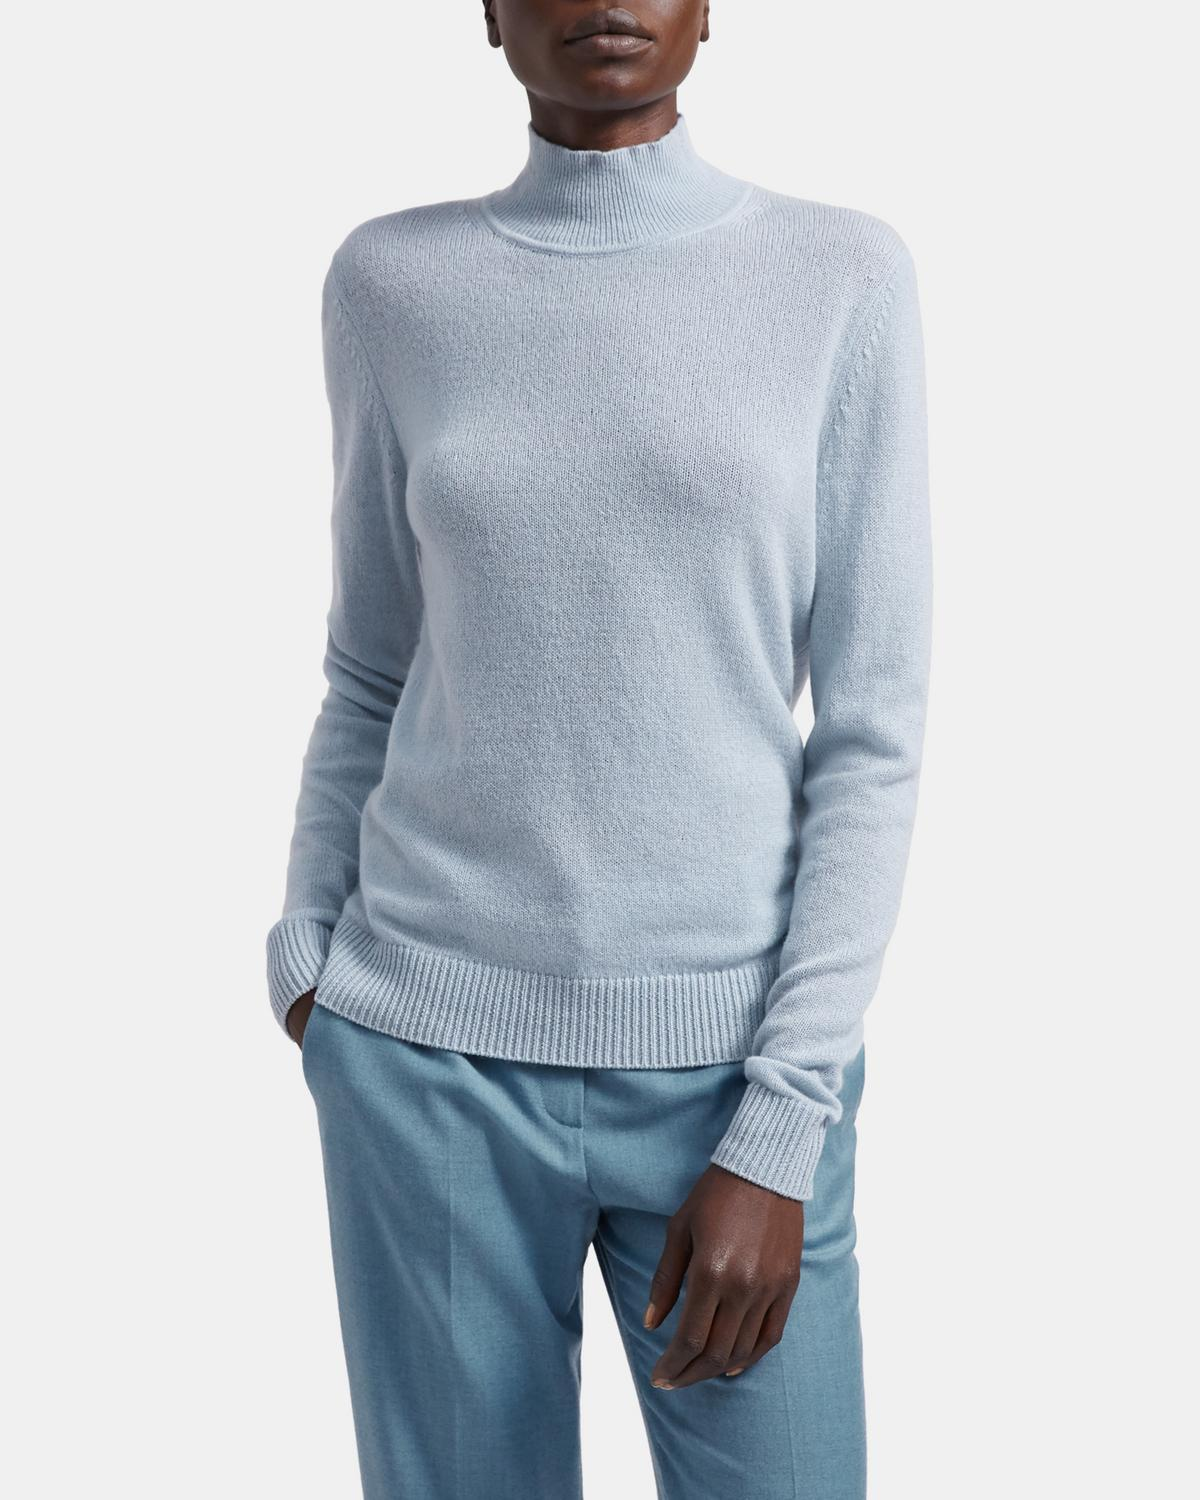 Basic Turtleneck Sweater in Feather Cashmere 0 - click to view larger image